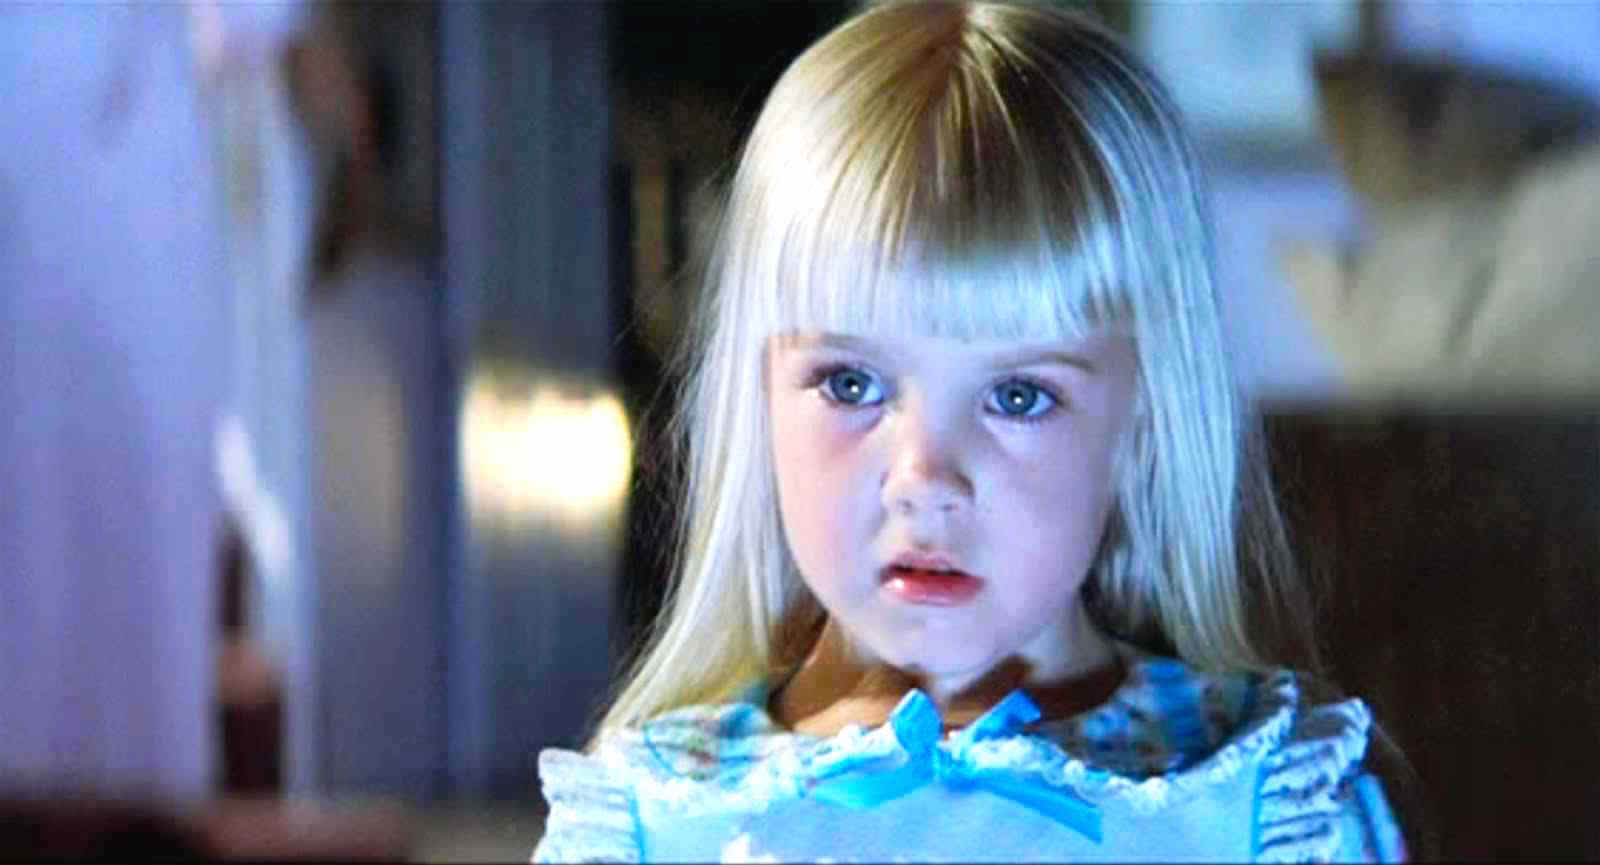 poltergeist, movies/tv